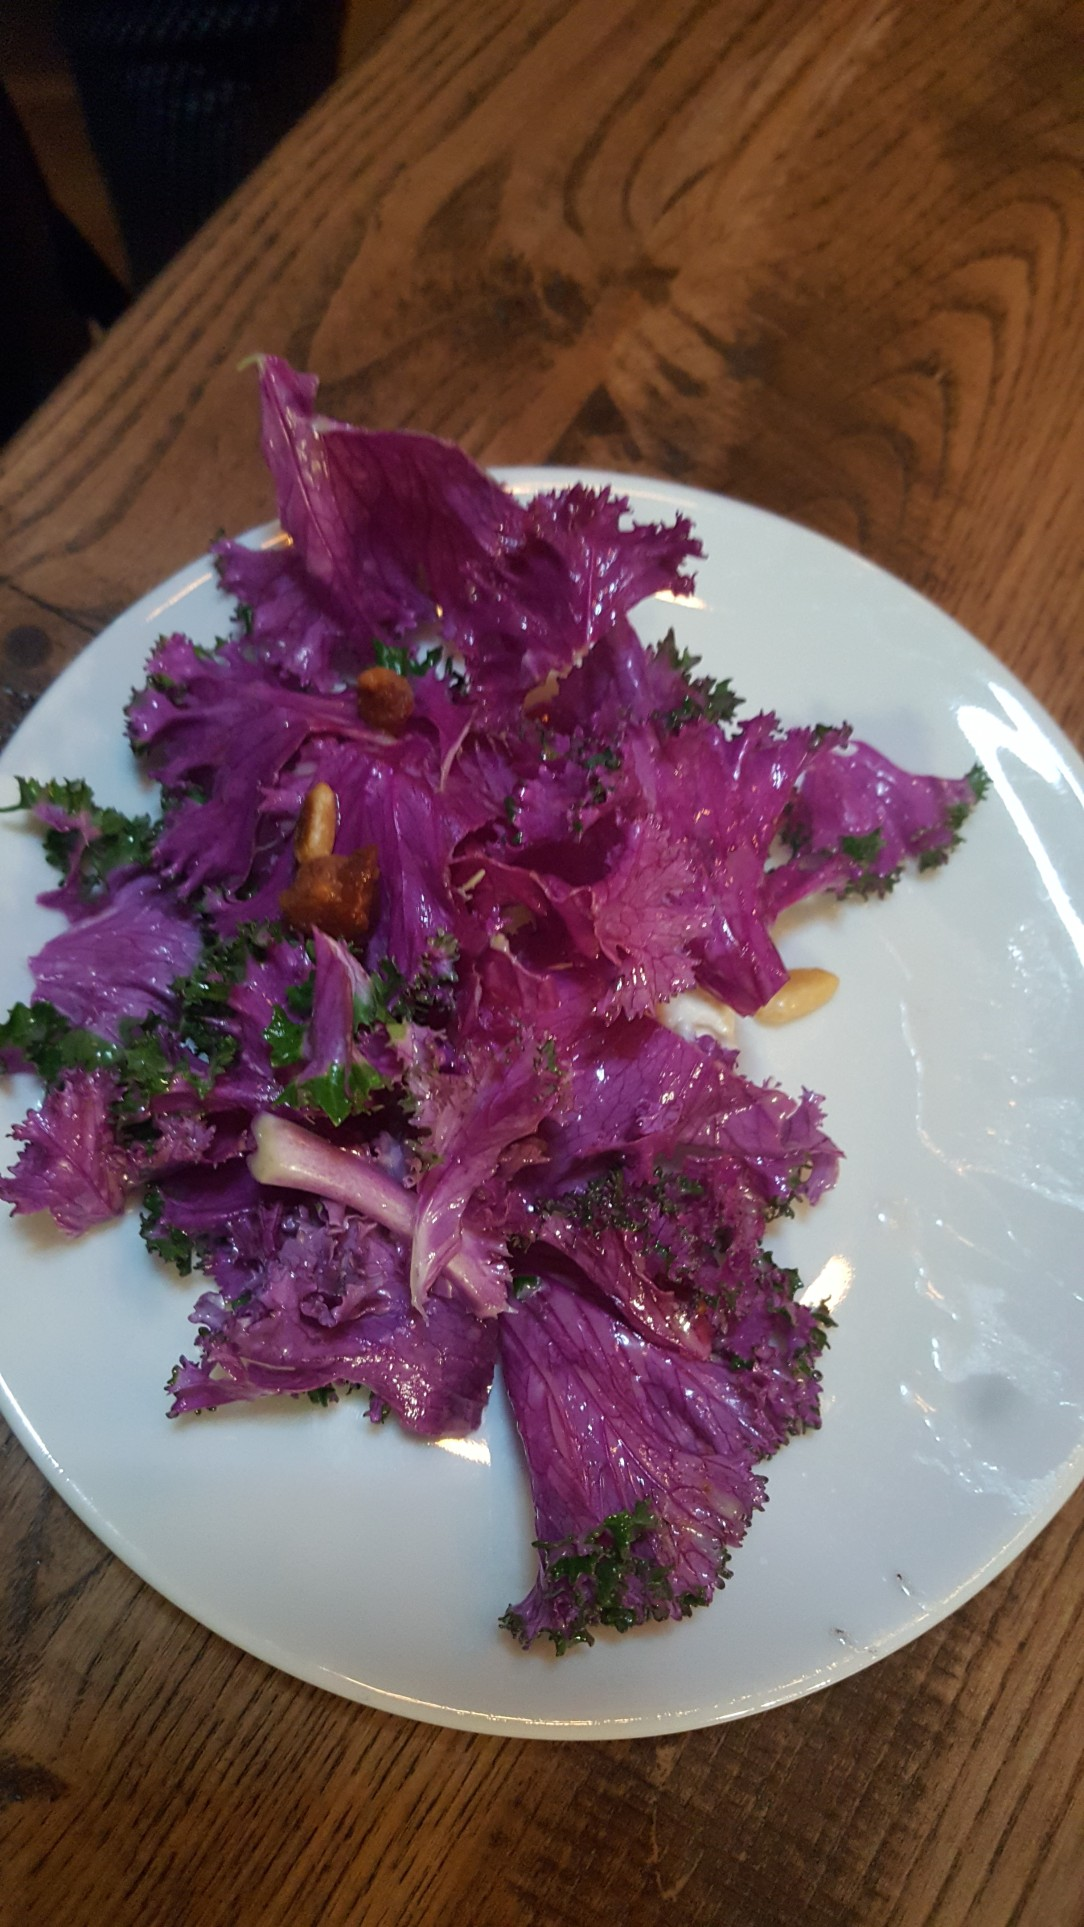 Purple kale, anyone?